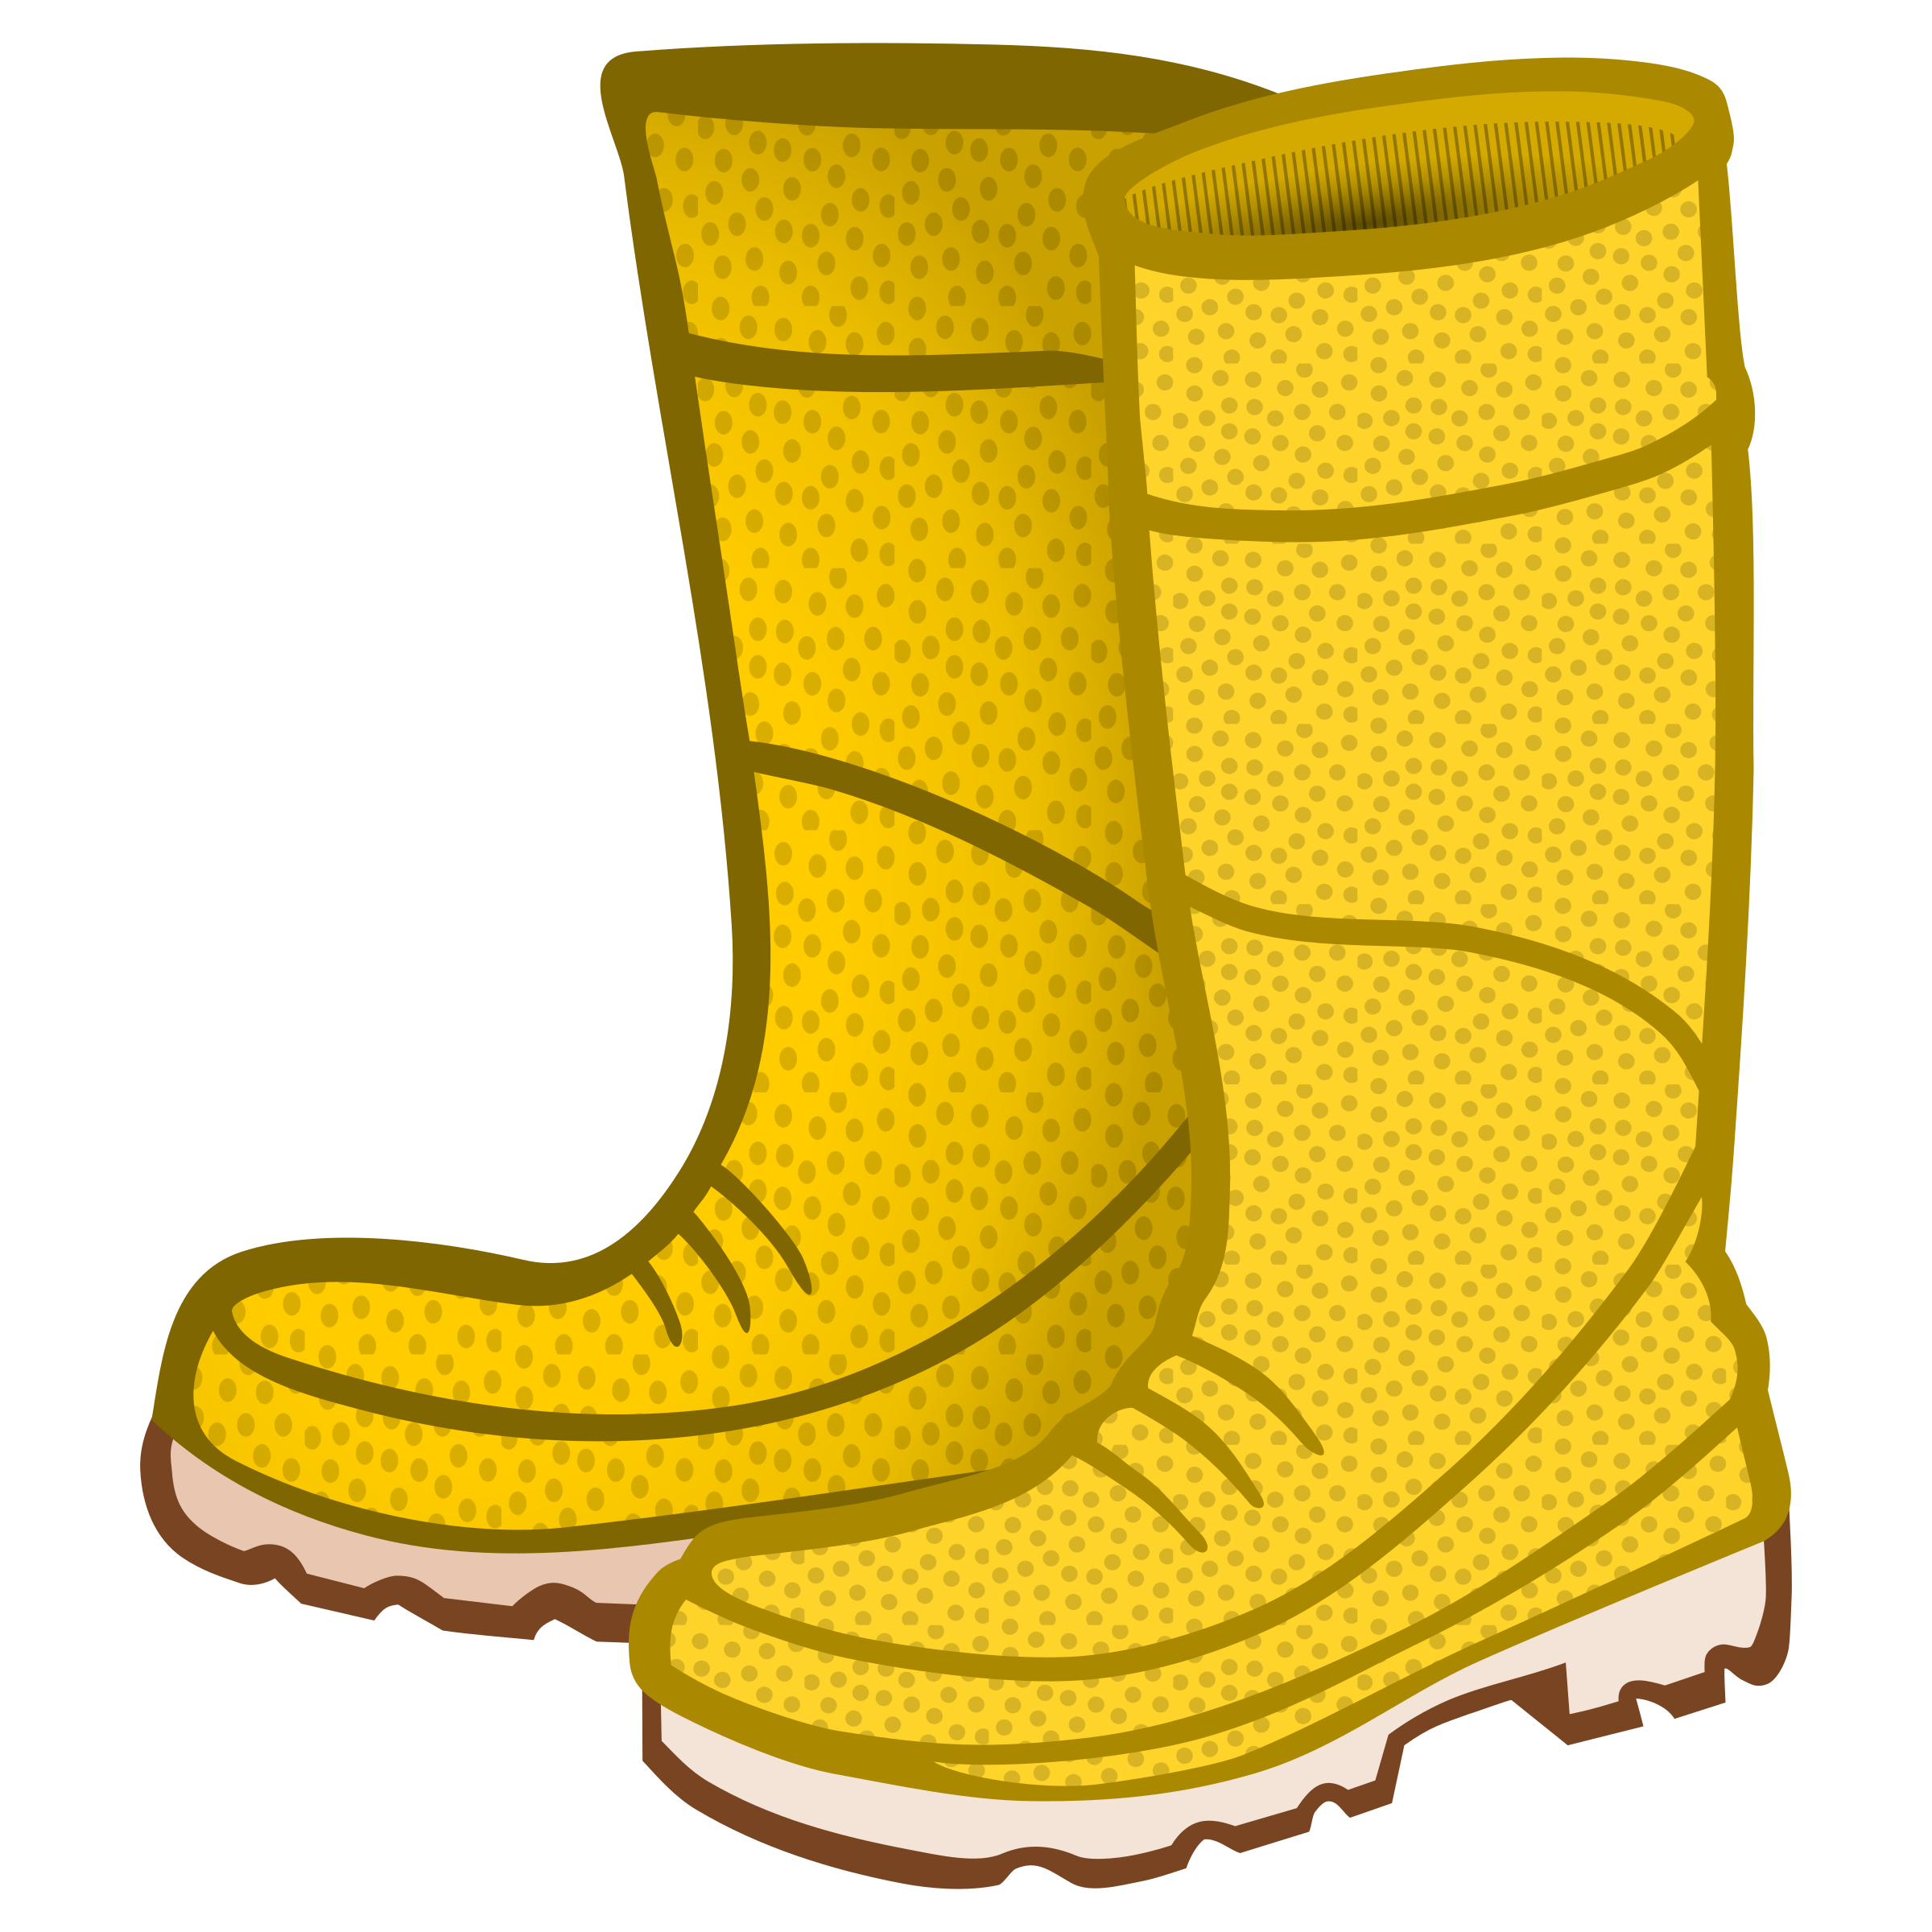 Hunting clipart hunting boot. Boots desktop backgrounds rubber